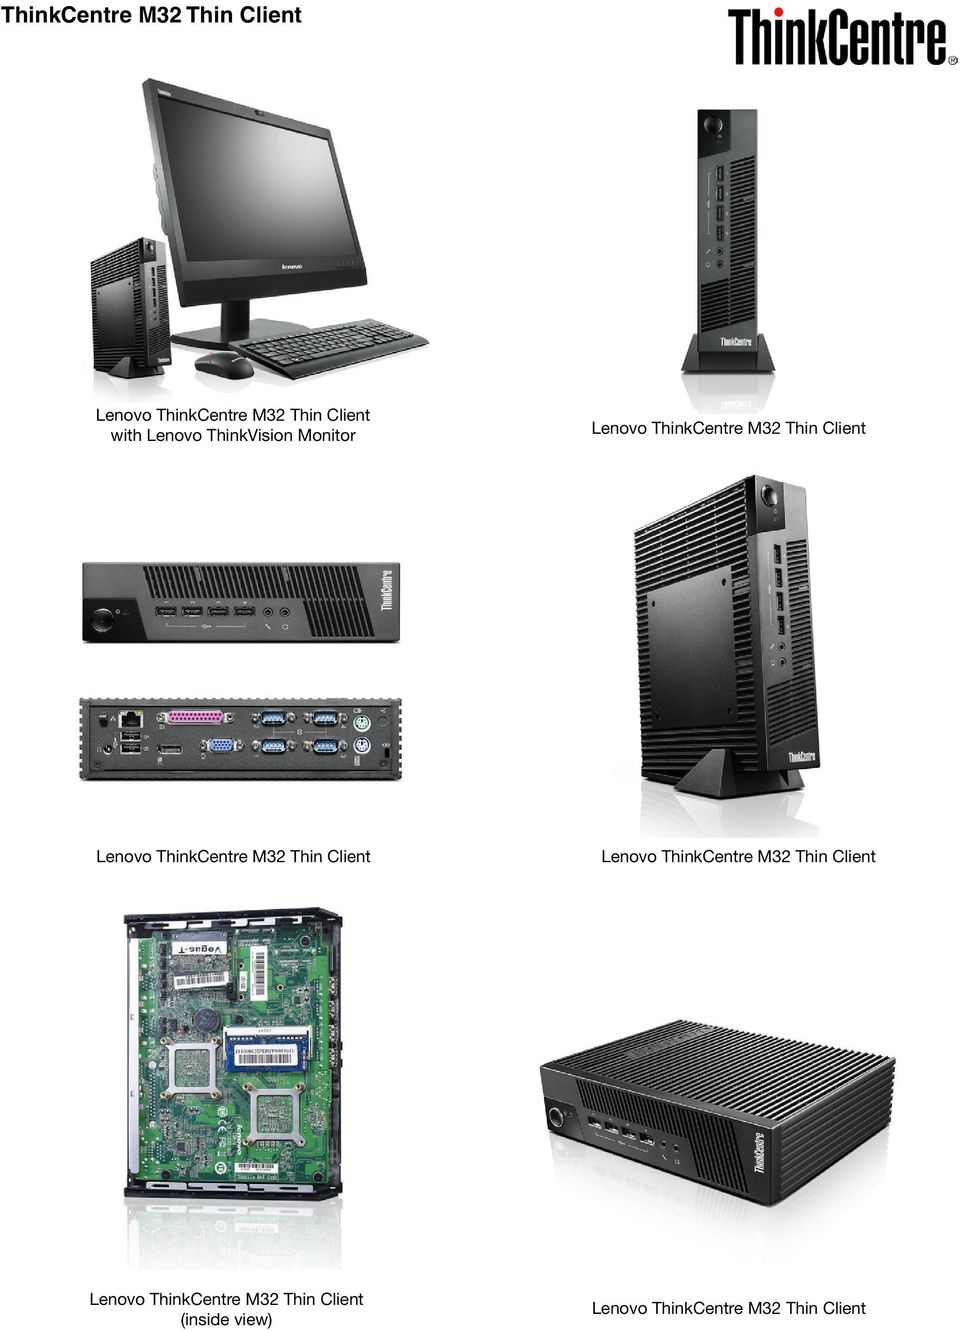 ThinkCentre M32 Thin Client Lenovo ThinkCentre M32 Thin Client Lenovo